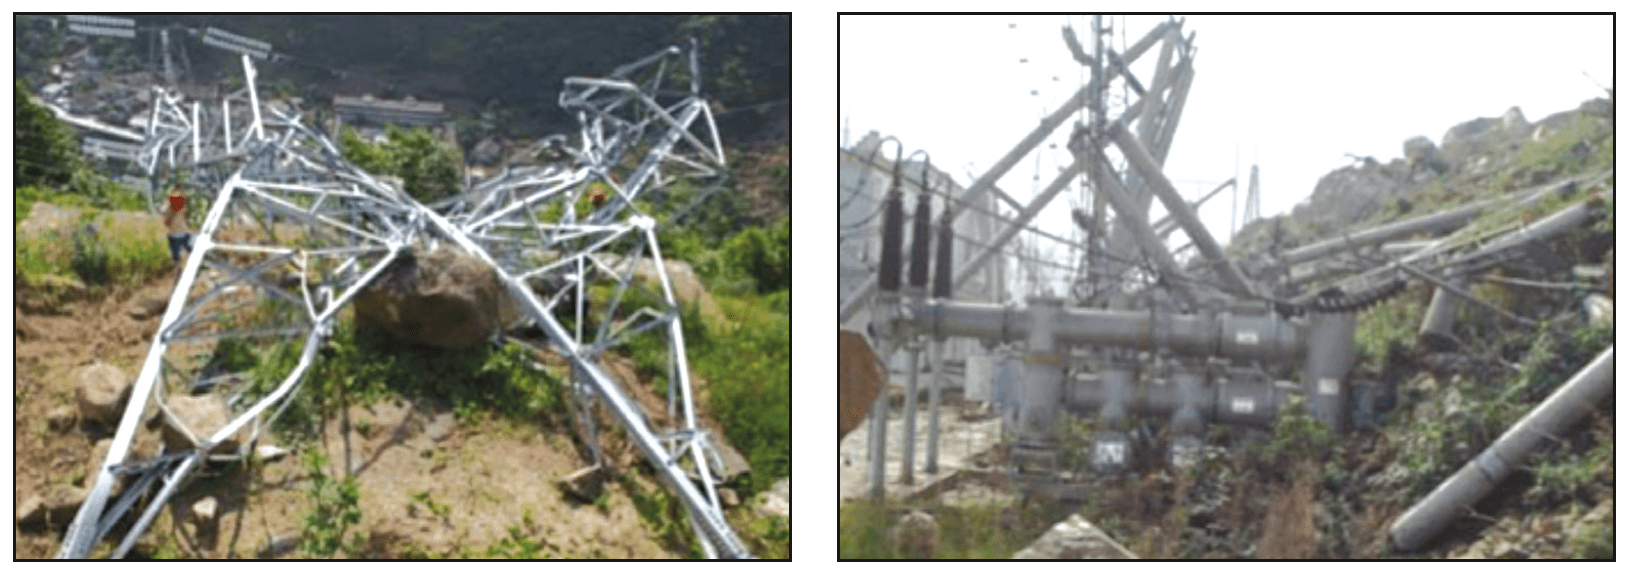 Examples of damage to power infrastructure and equipment due to earthquake. bushing Development & Testing Bushings for Seismic Conditions Examples of damage to power infrastructure and equipment due to earthquake